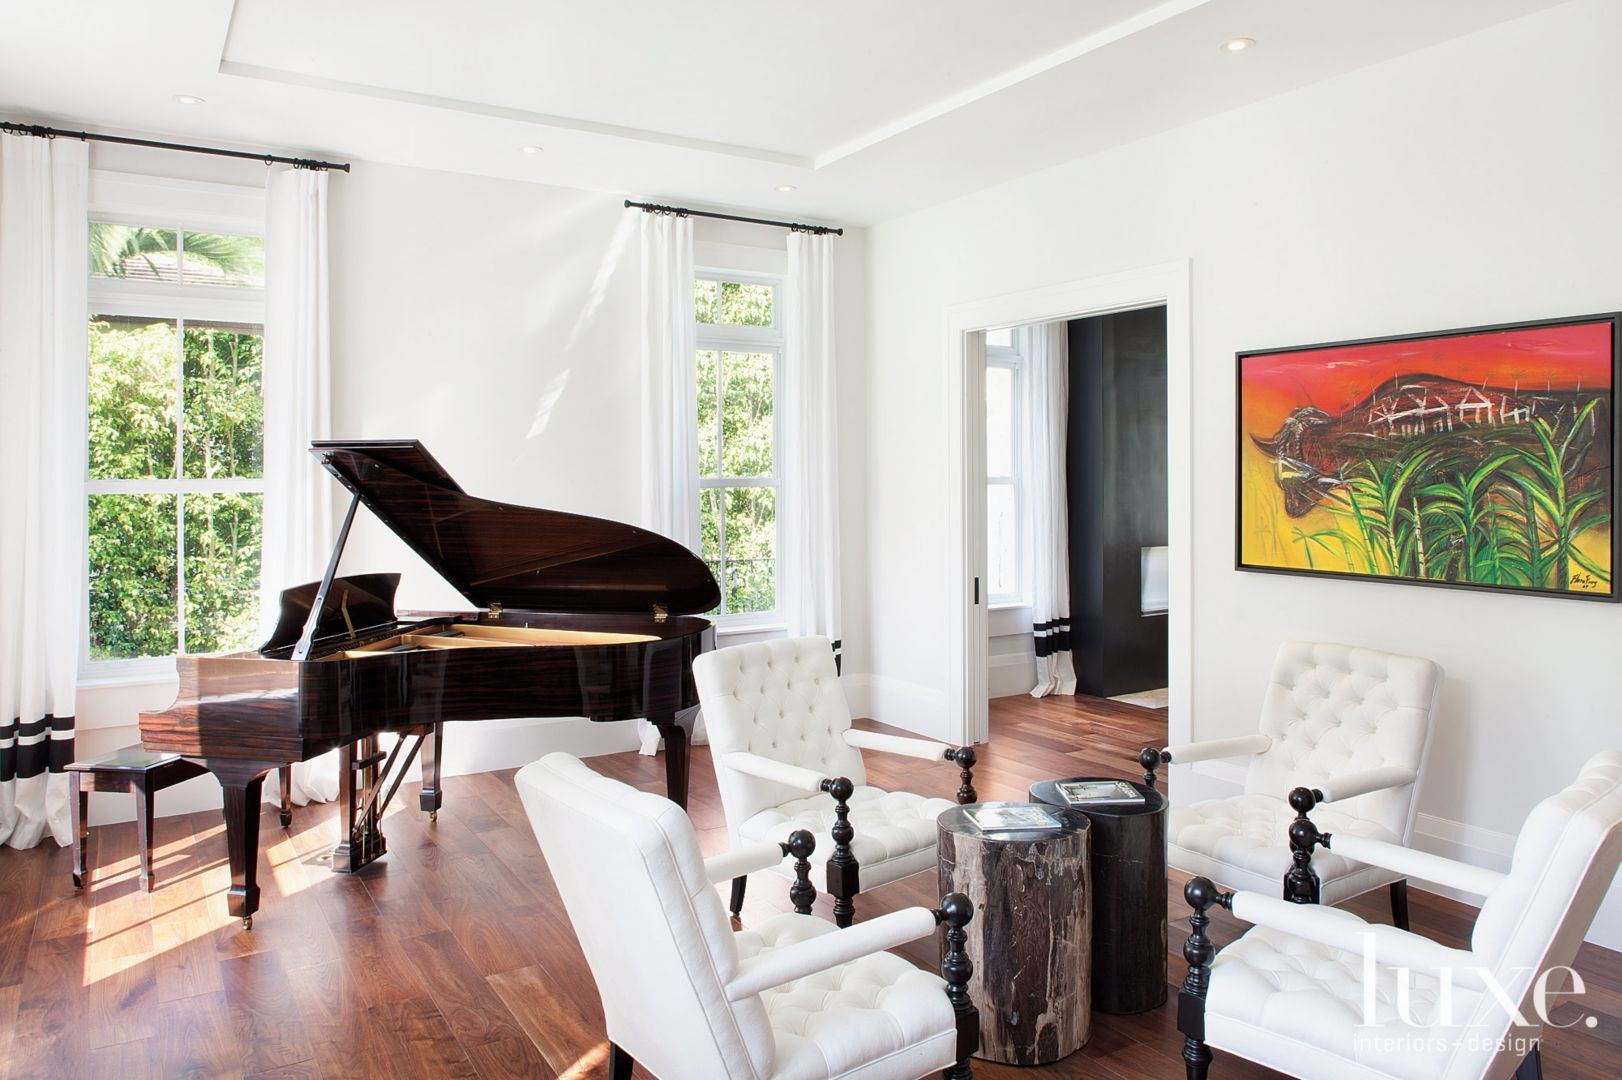 20 Ways to Decorate with Animal Print | LuxeWorthy - Design Insight ...